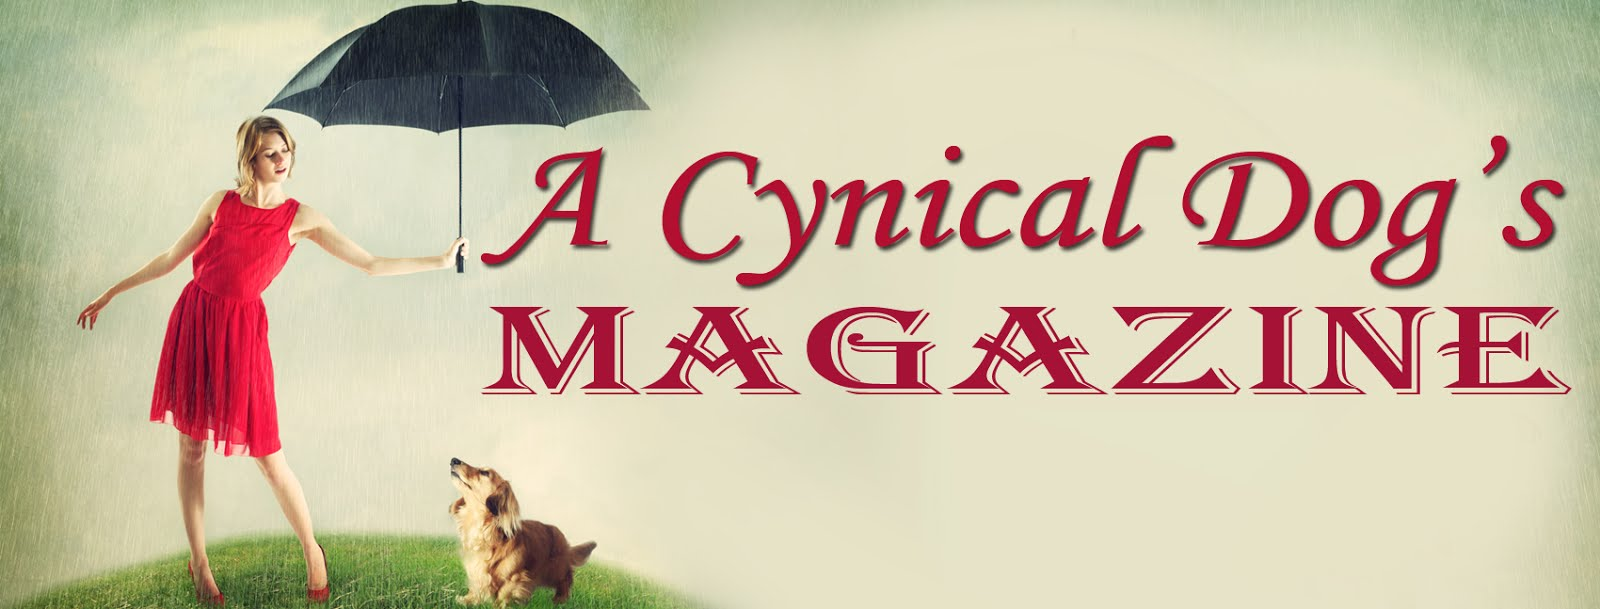 Online Magazine of a Cynical Dog